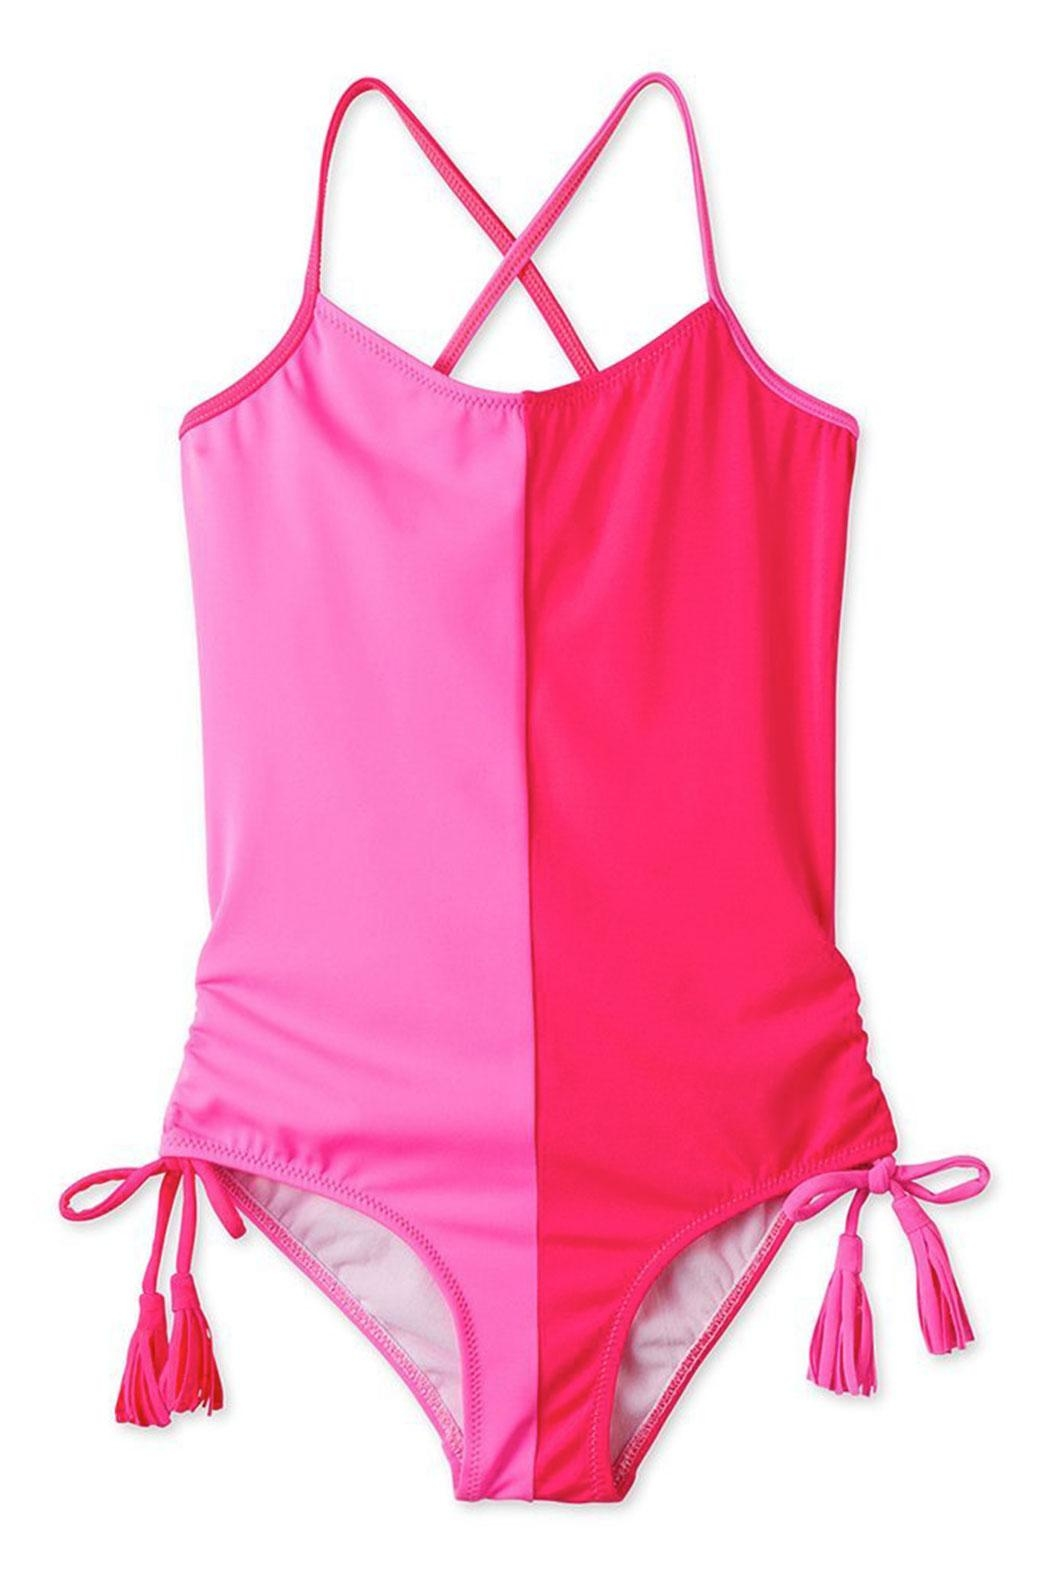 256f62dca4 Stella Cove Hot Pink Tassel Swimsuit from Texas by Bambinos — Shoptiques